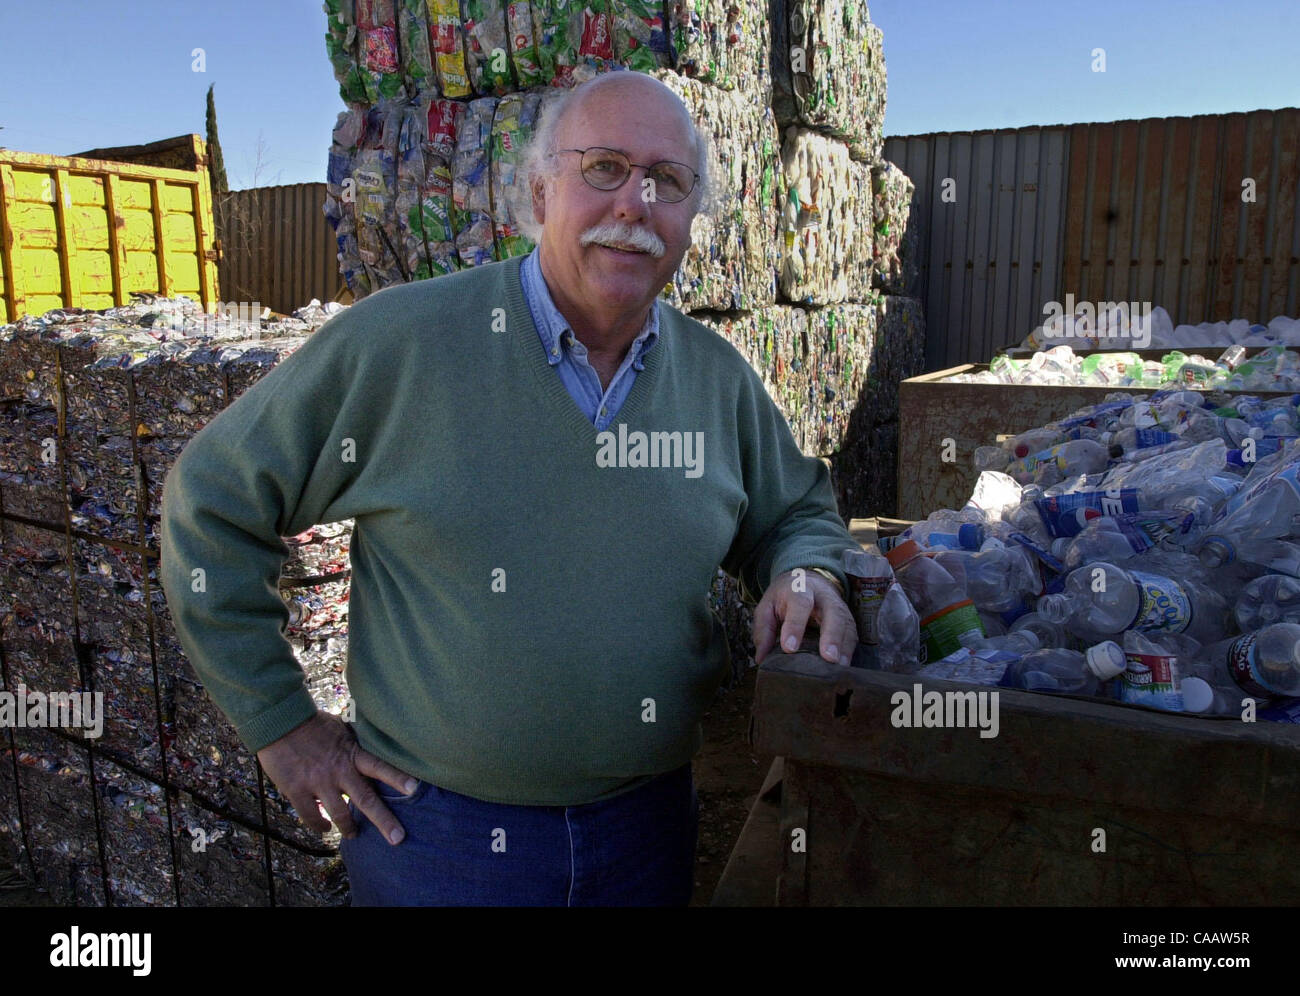 who owns oakley  ken gaunstadt is the owner of delta scrap and salvage in oakley california. he is